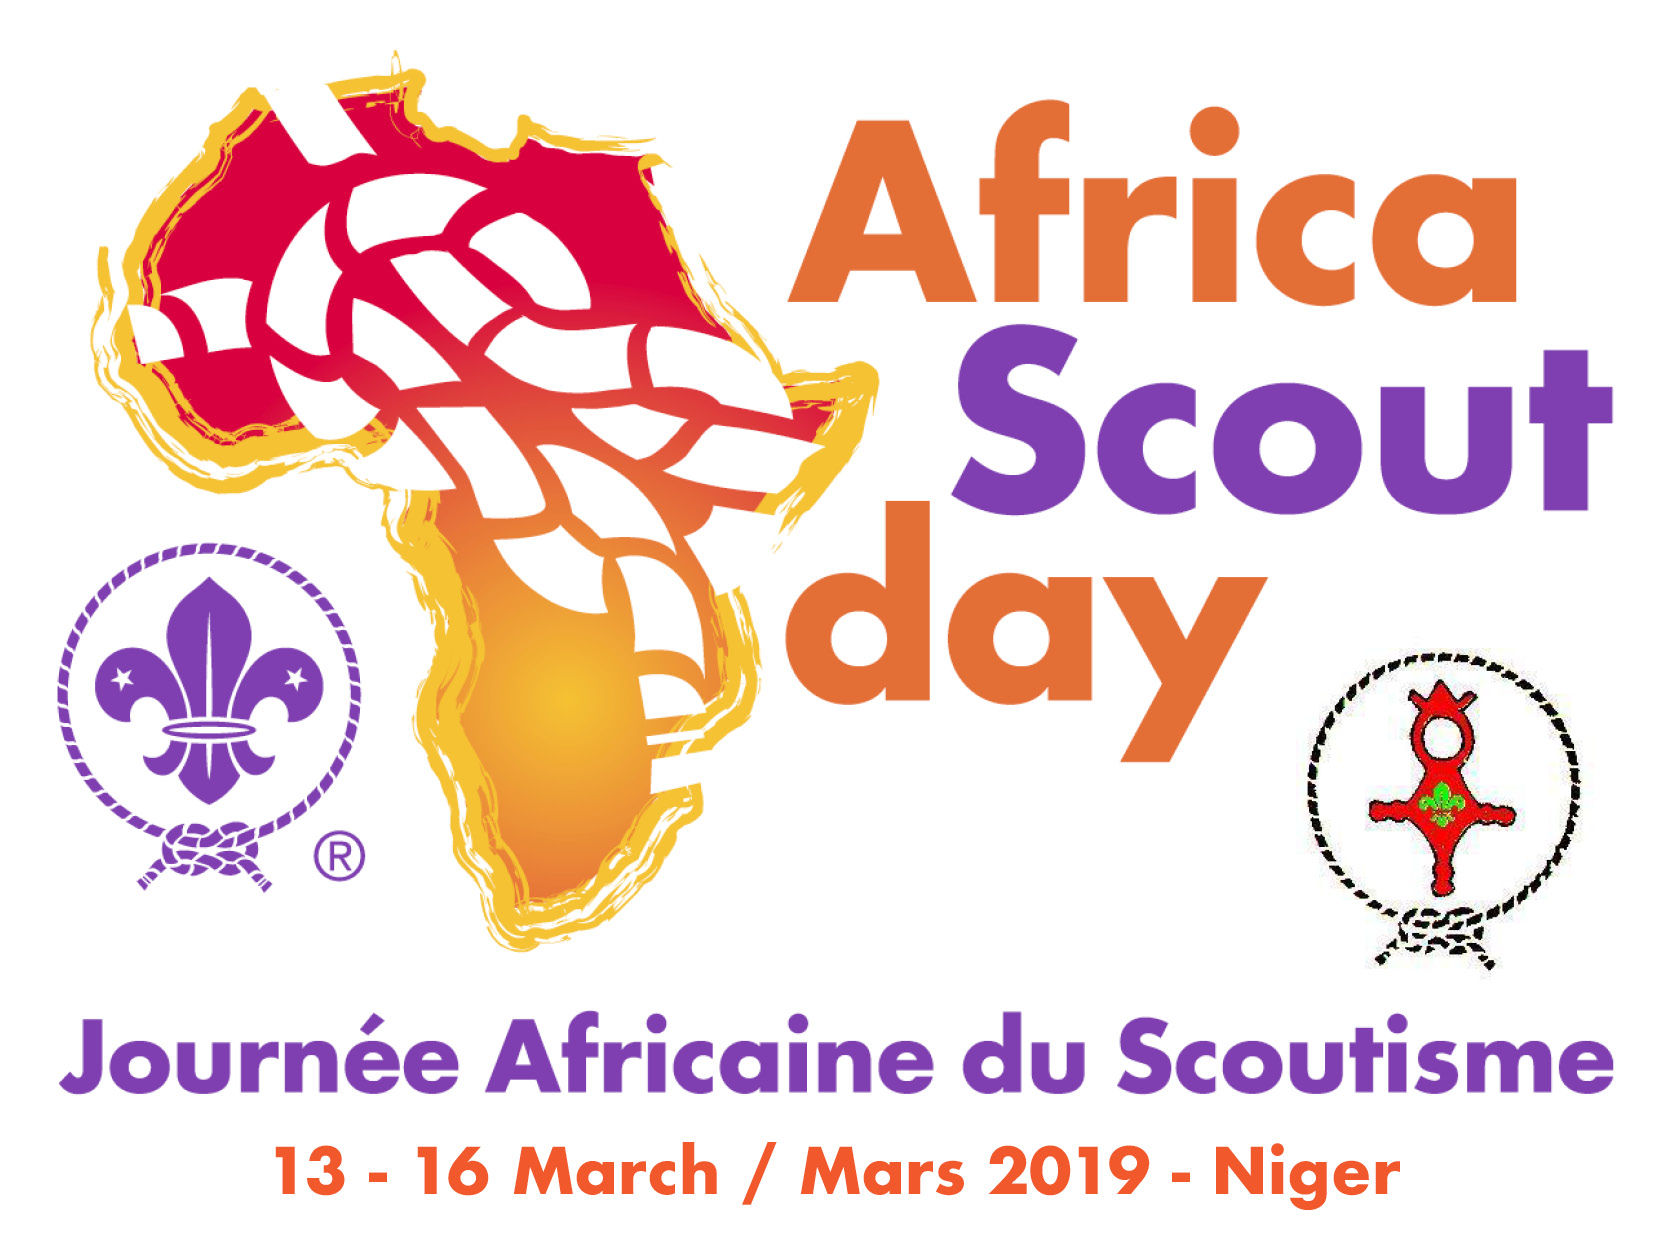 Africa Scout Day Celebrations 2019 | World Scouting